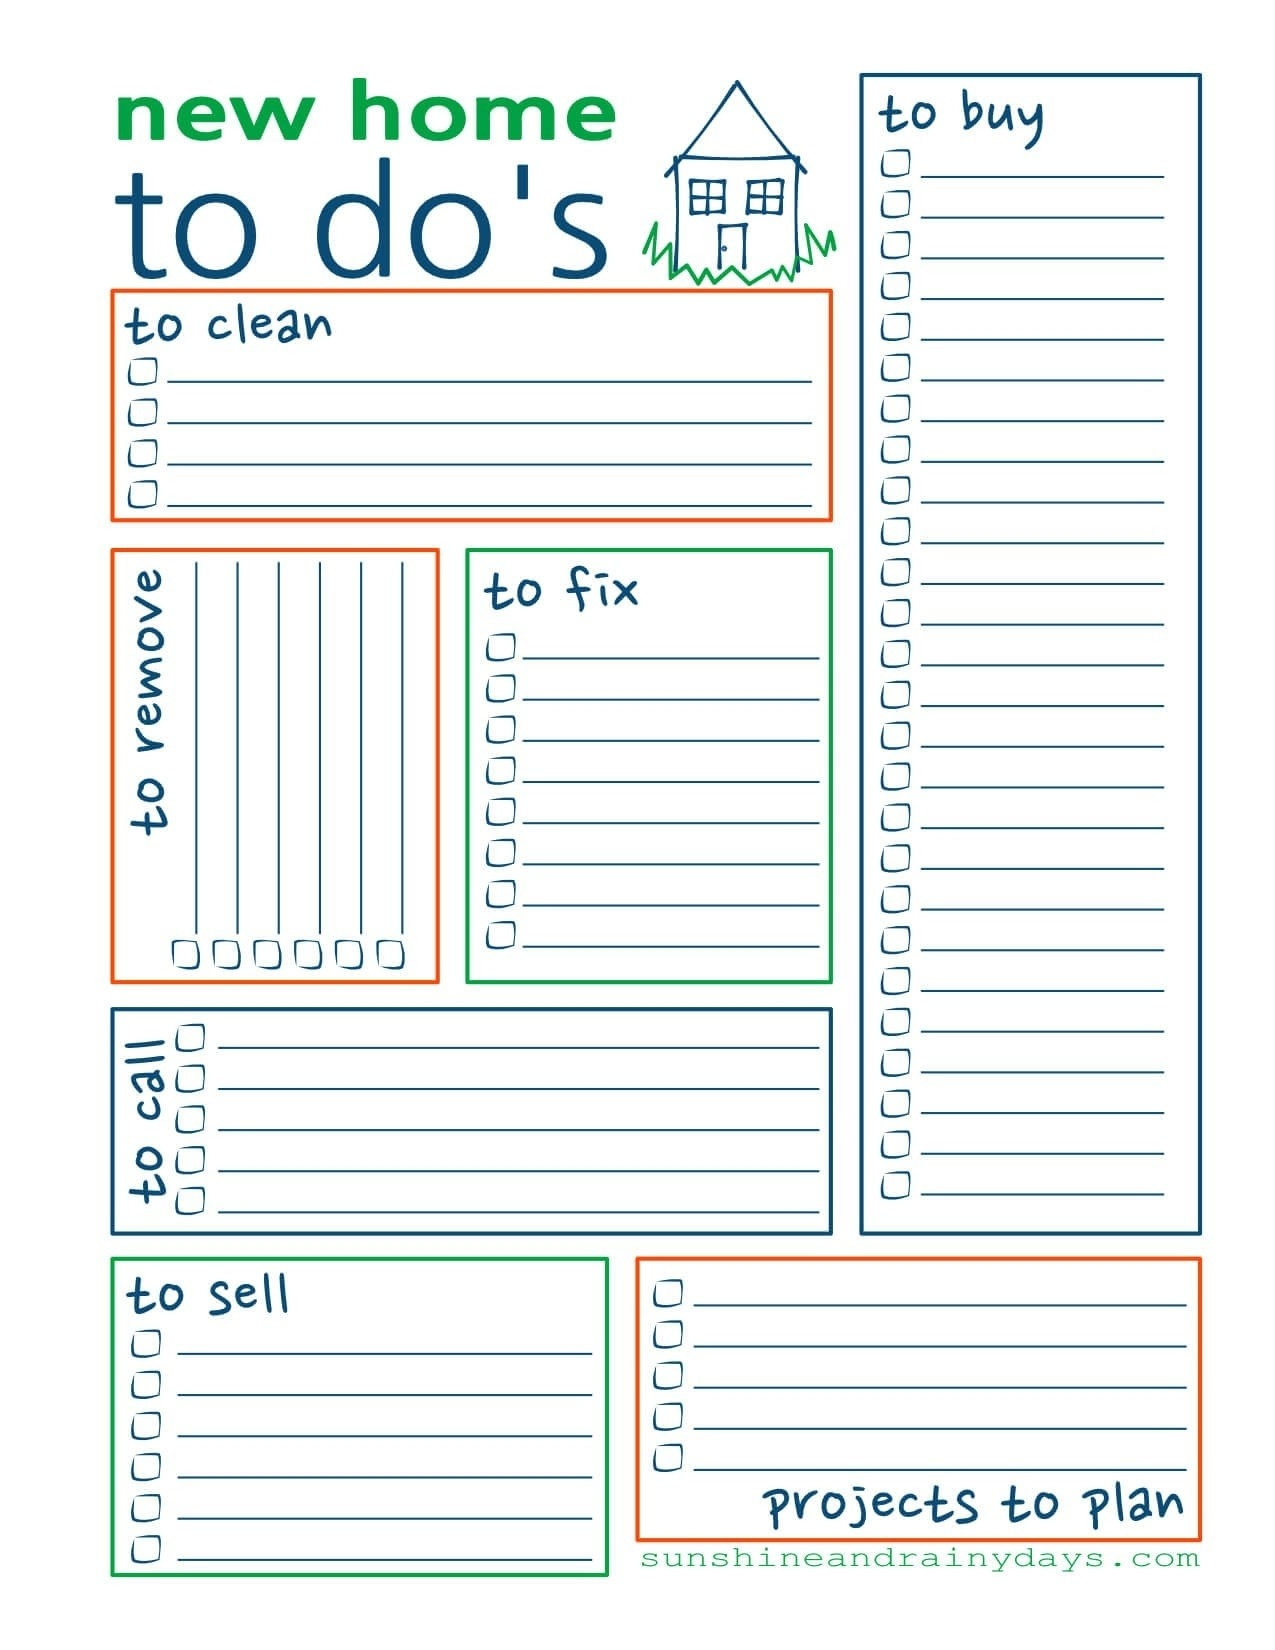 Free Printable To Do List For Home | World Of Example in Free Printable To Do List For Home 25483